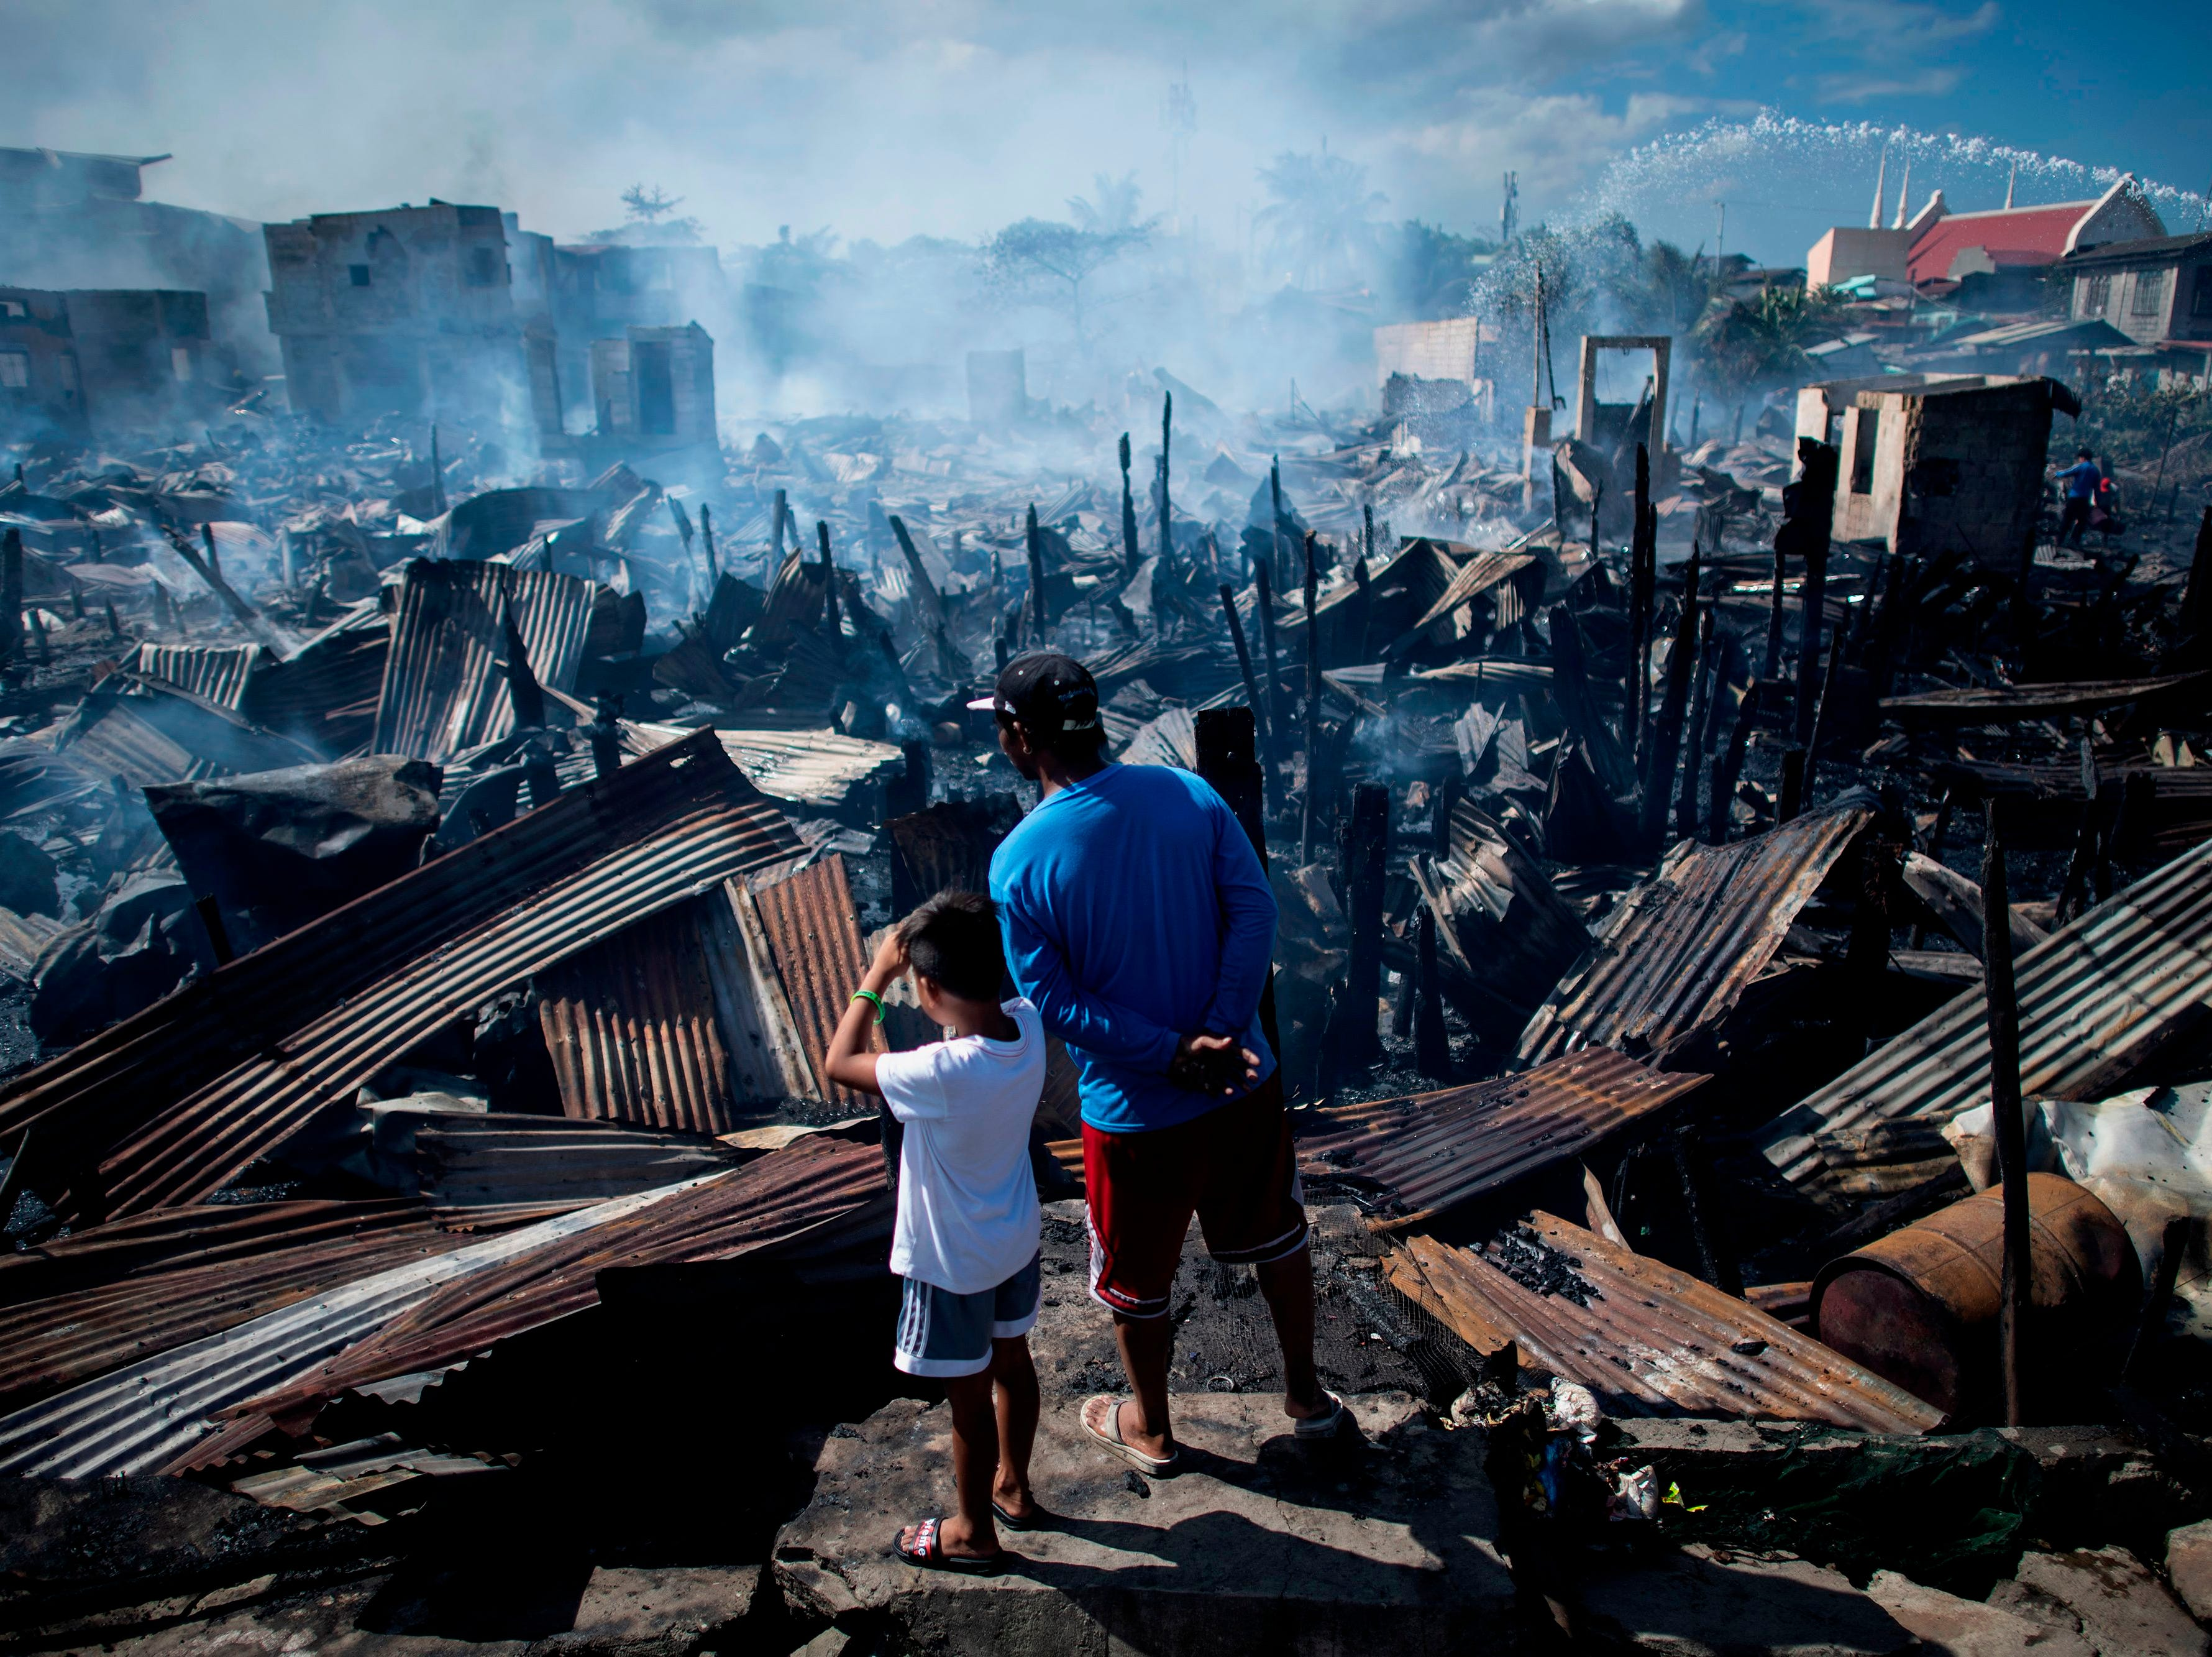 Residents stand amid houses destroyed by a fire in Navotas, Philippines, Nov. 8, 2018. Some 150 families were affected by the fire, according to local media reports.